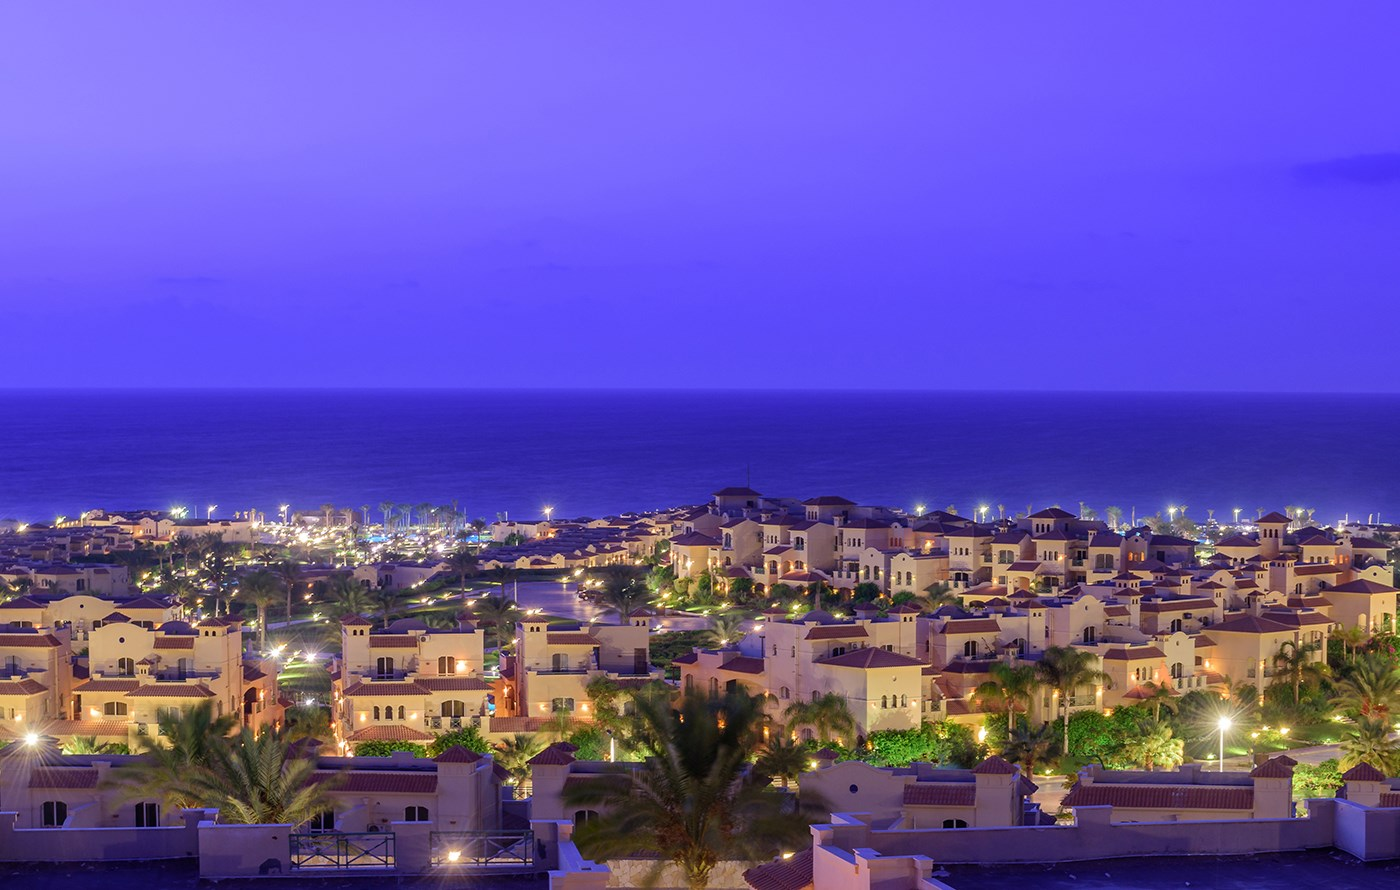 night-view-in-la-vista-ray-sokhna-resort